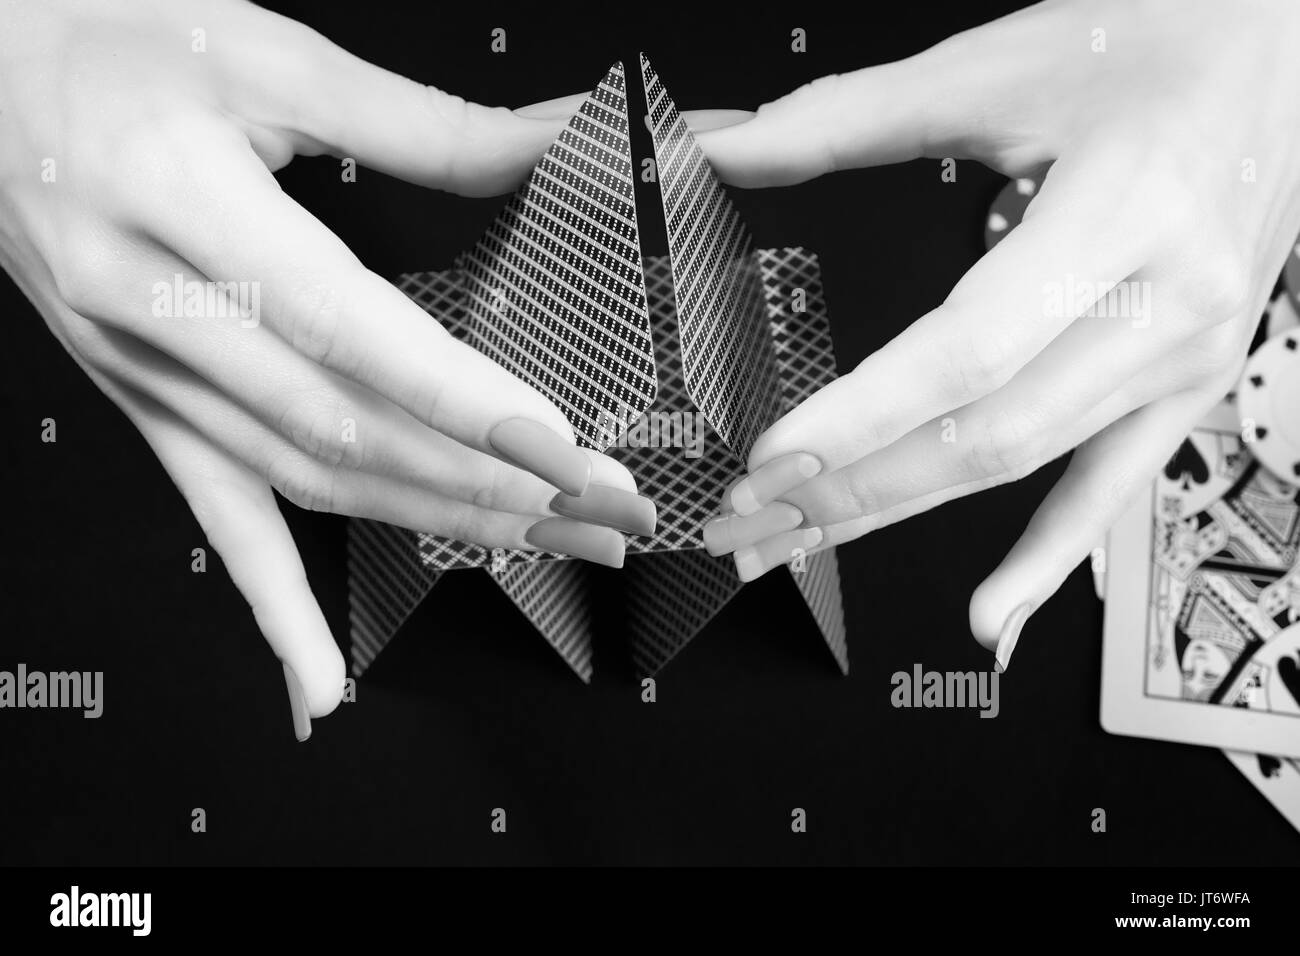 Woman hands assembling house of cards. Black and white photo. Gambling, casino, fortune and chance theme - Stock Image